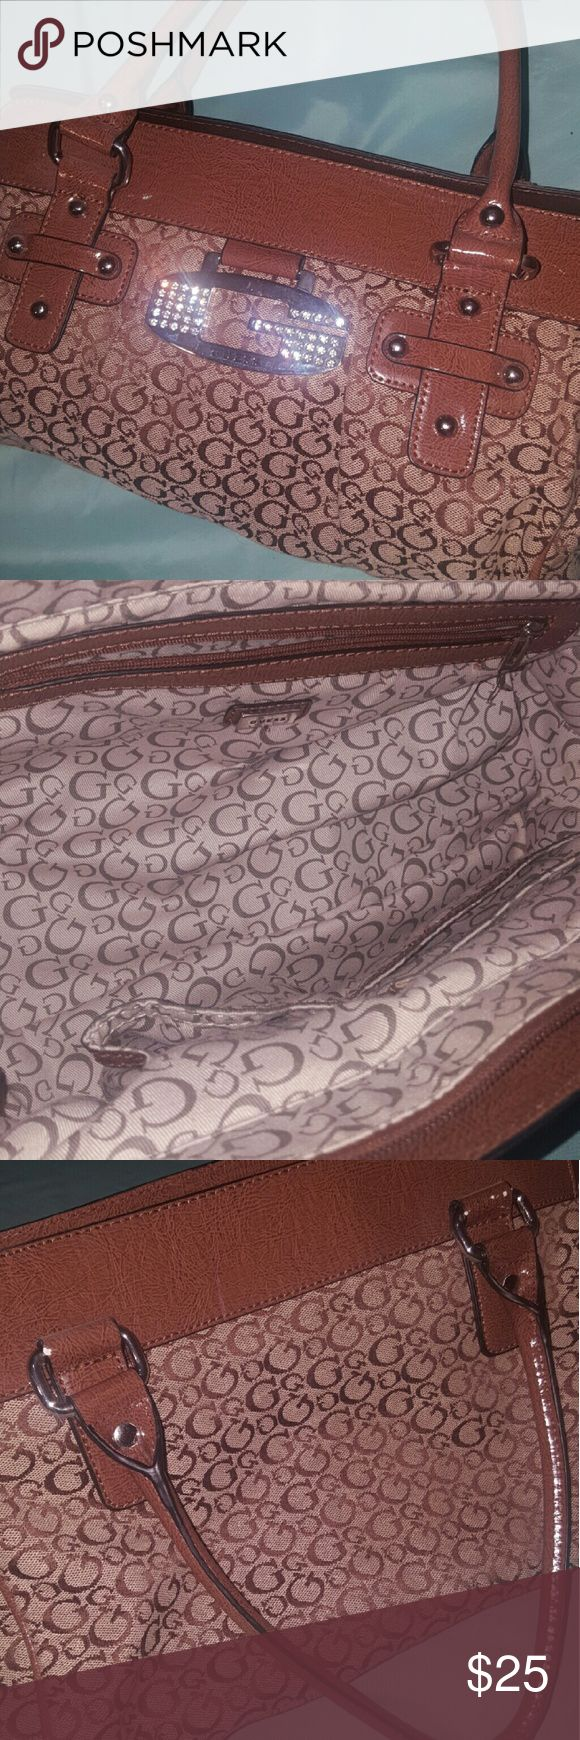 """Guess purse This Guess purse has been used gently. The inside is very clean and the outside is in excellent condition. Do notice that the """"G"""" plaque has a few scratches... the back of the plaque still has the clear plastic it comes with... Guess Bags Satchels"""